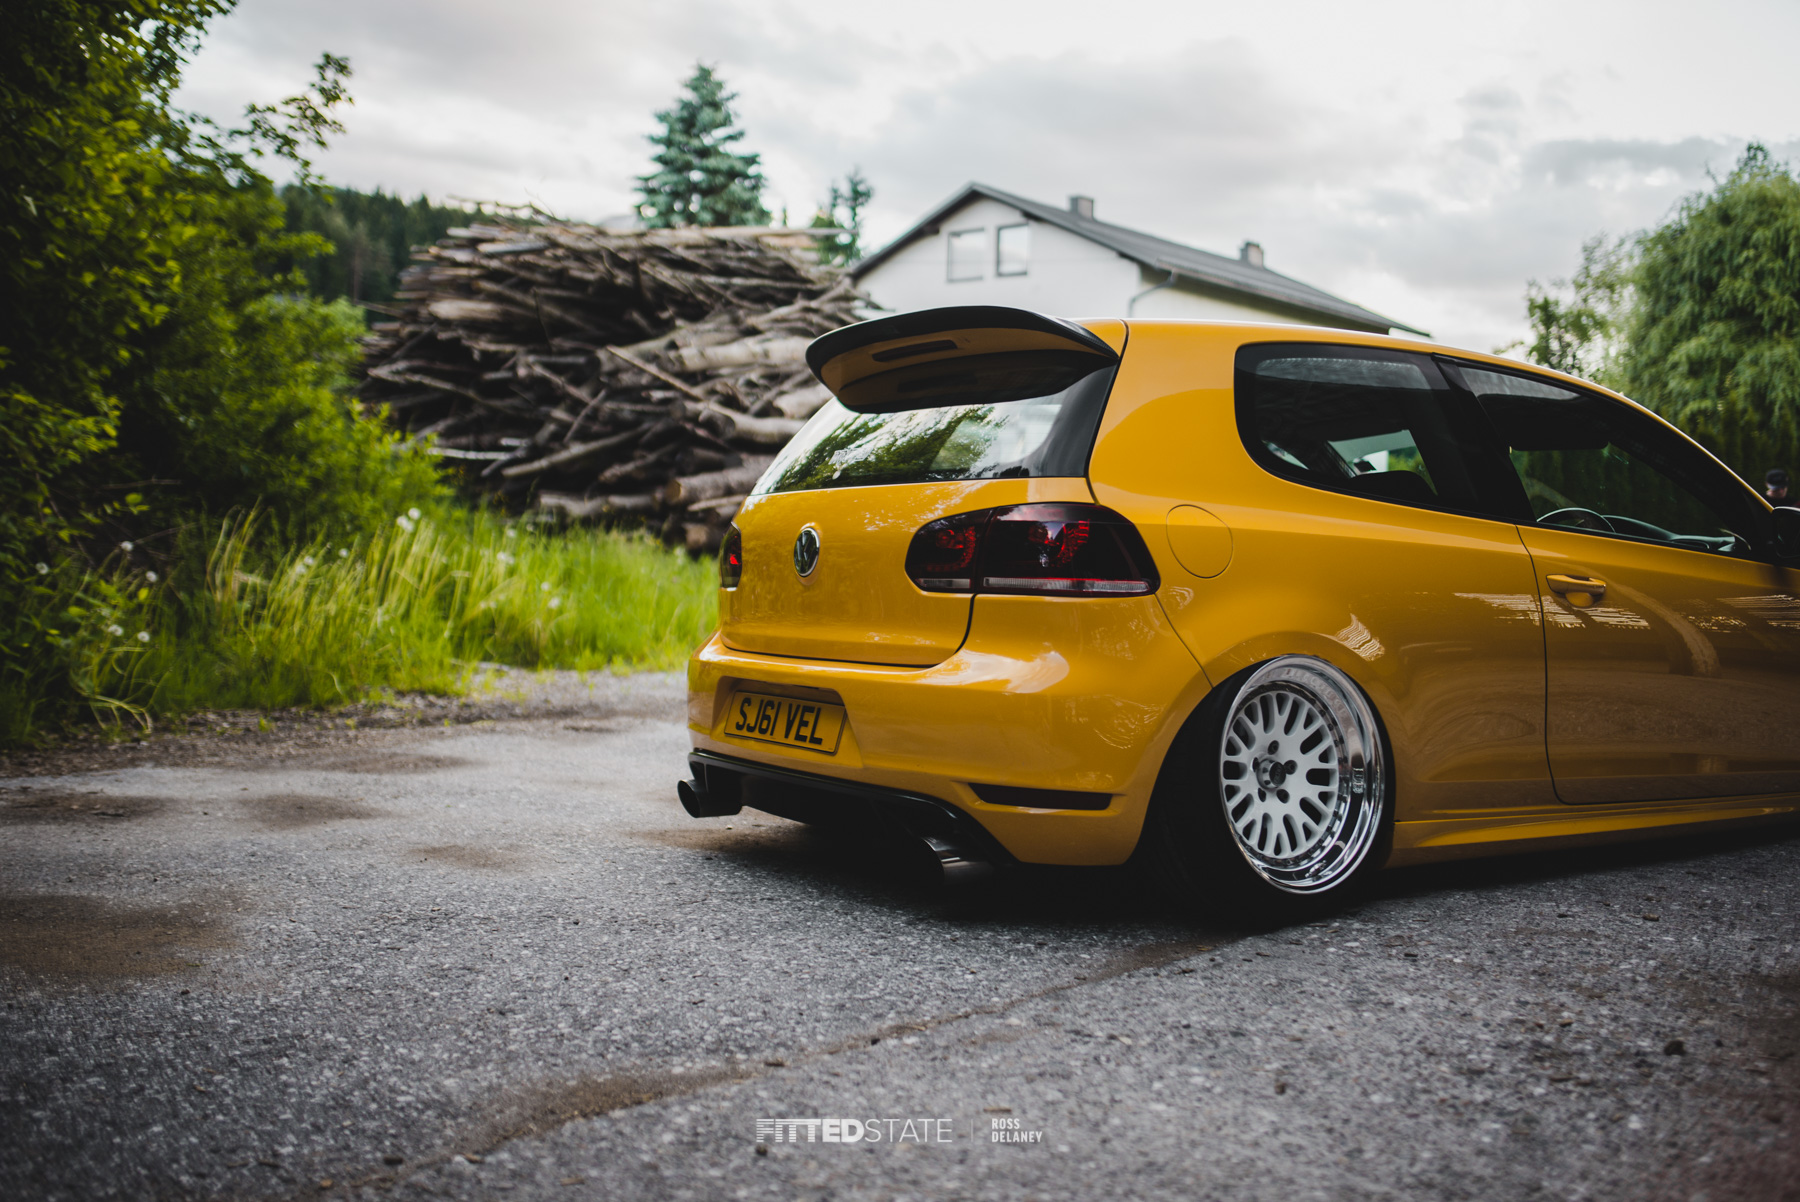 Chris Coles Mk6 Golf Fitted State